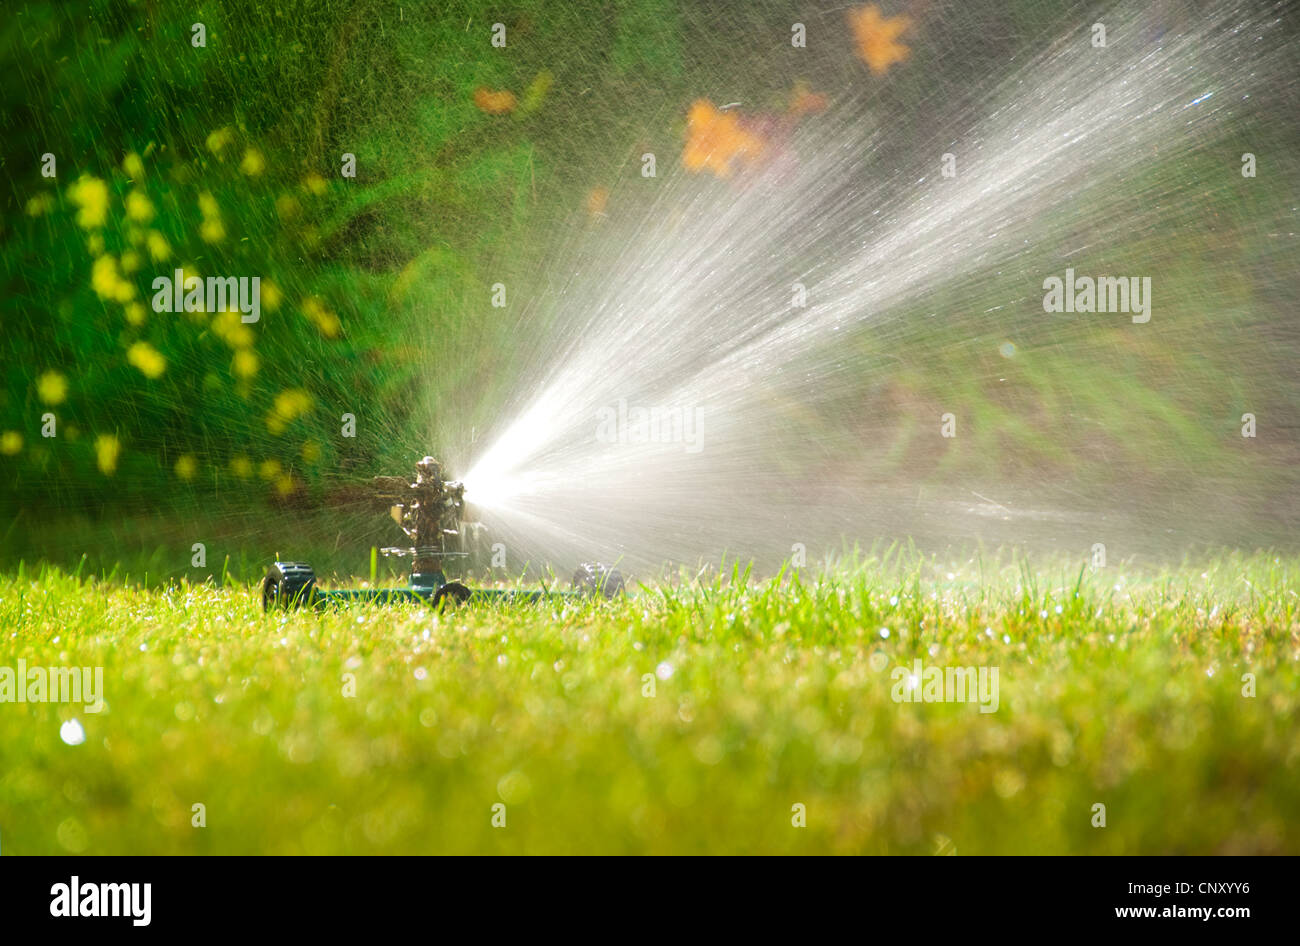 Lawn sprinkler spraying water over green grass in summer - Stock Image